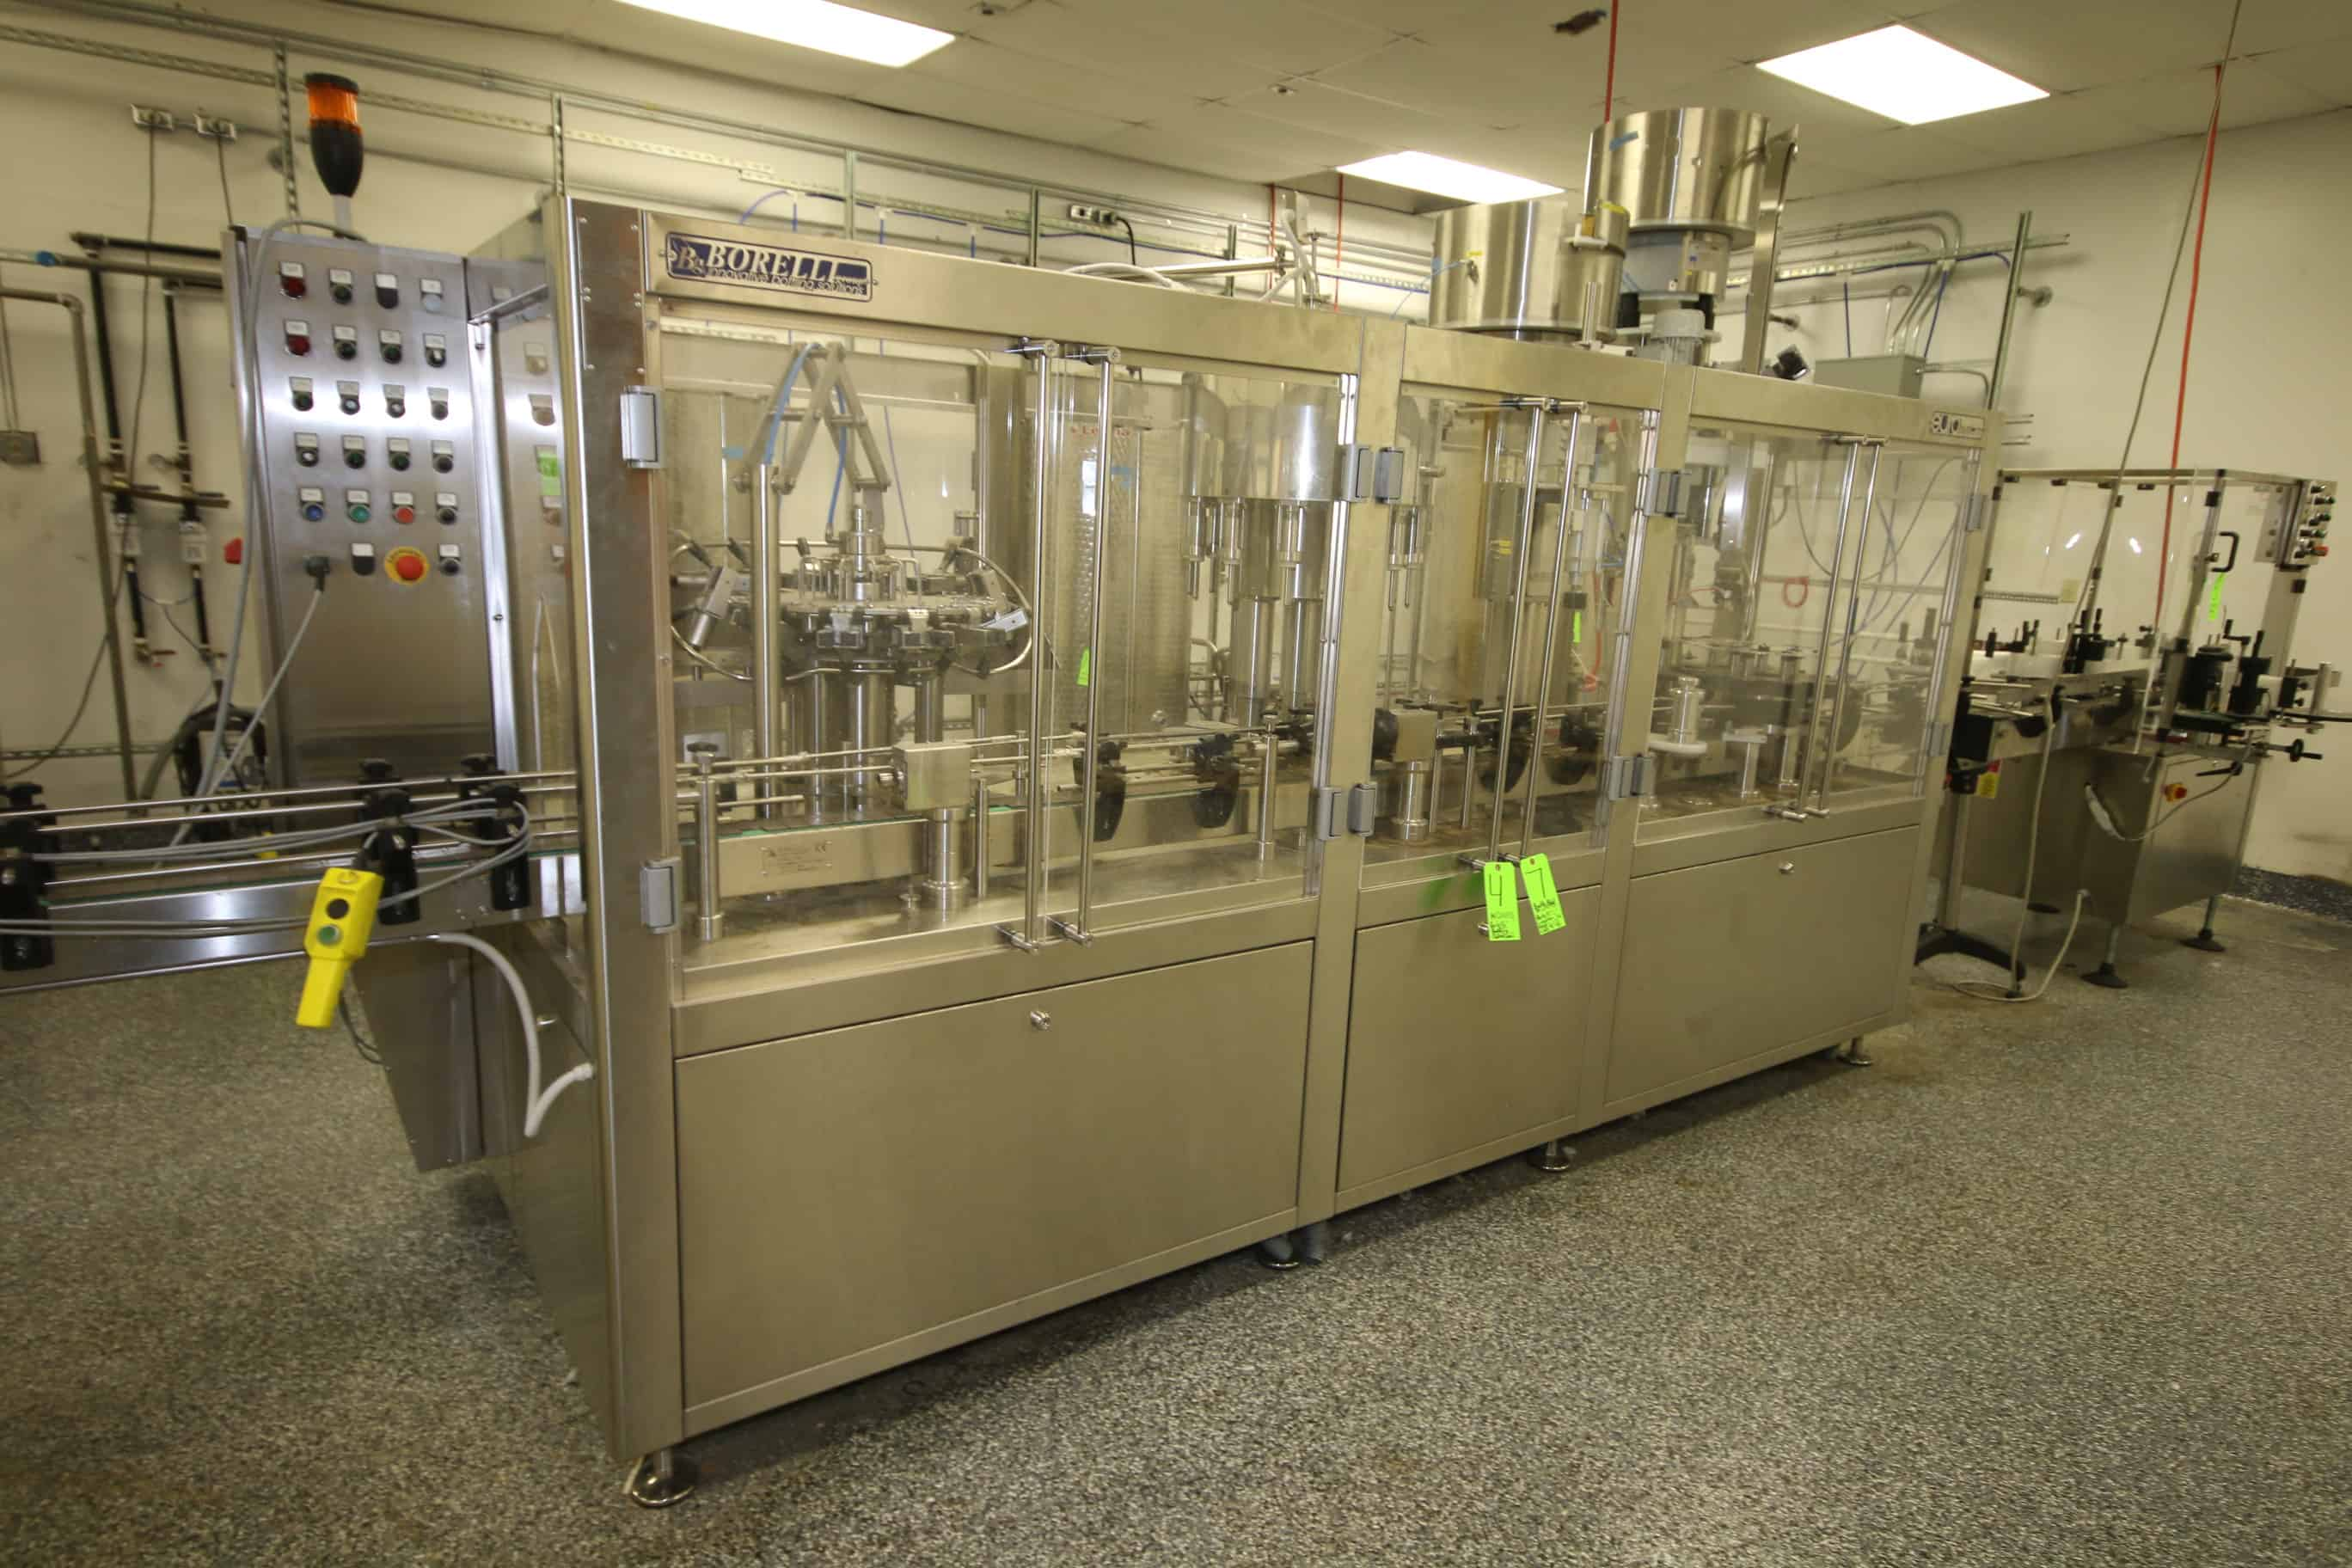 2016 Borelli Compact Bottling System, M/N Euro SYSTEM XP12-C12PK, with Automatic Monoblock Rinsing/Filling/Capping Stations, with 12-Gripper Rinser, Includes Recycle Rinser/CIP System with Pump, Vessel, and Filters, with 12-Valve Gravity/Low Depression Filler, and Arol Capping System, S/N A3714, with Controls and Change Parts, Up to 2,000 Bottles Per Hour